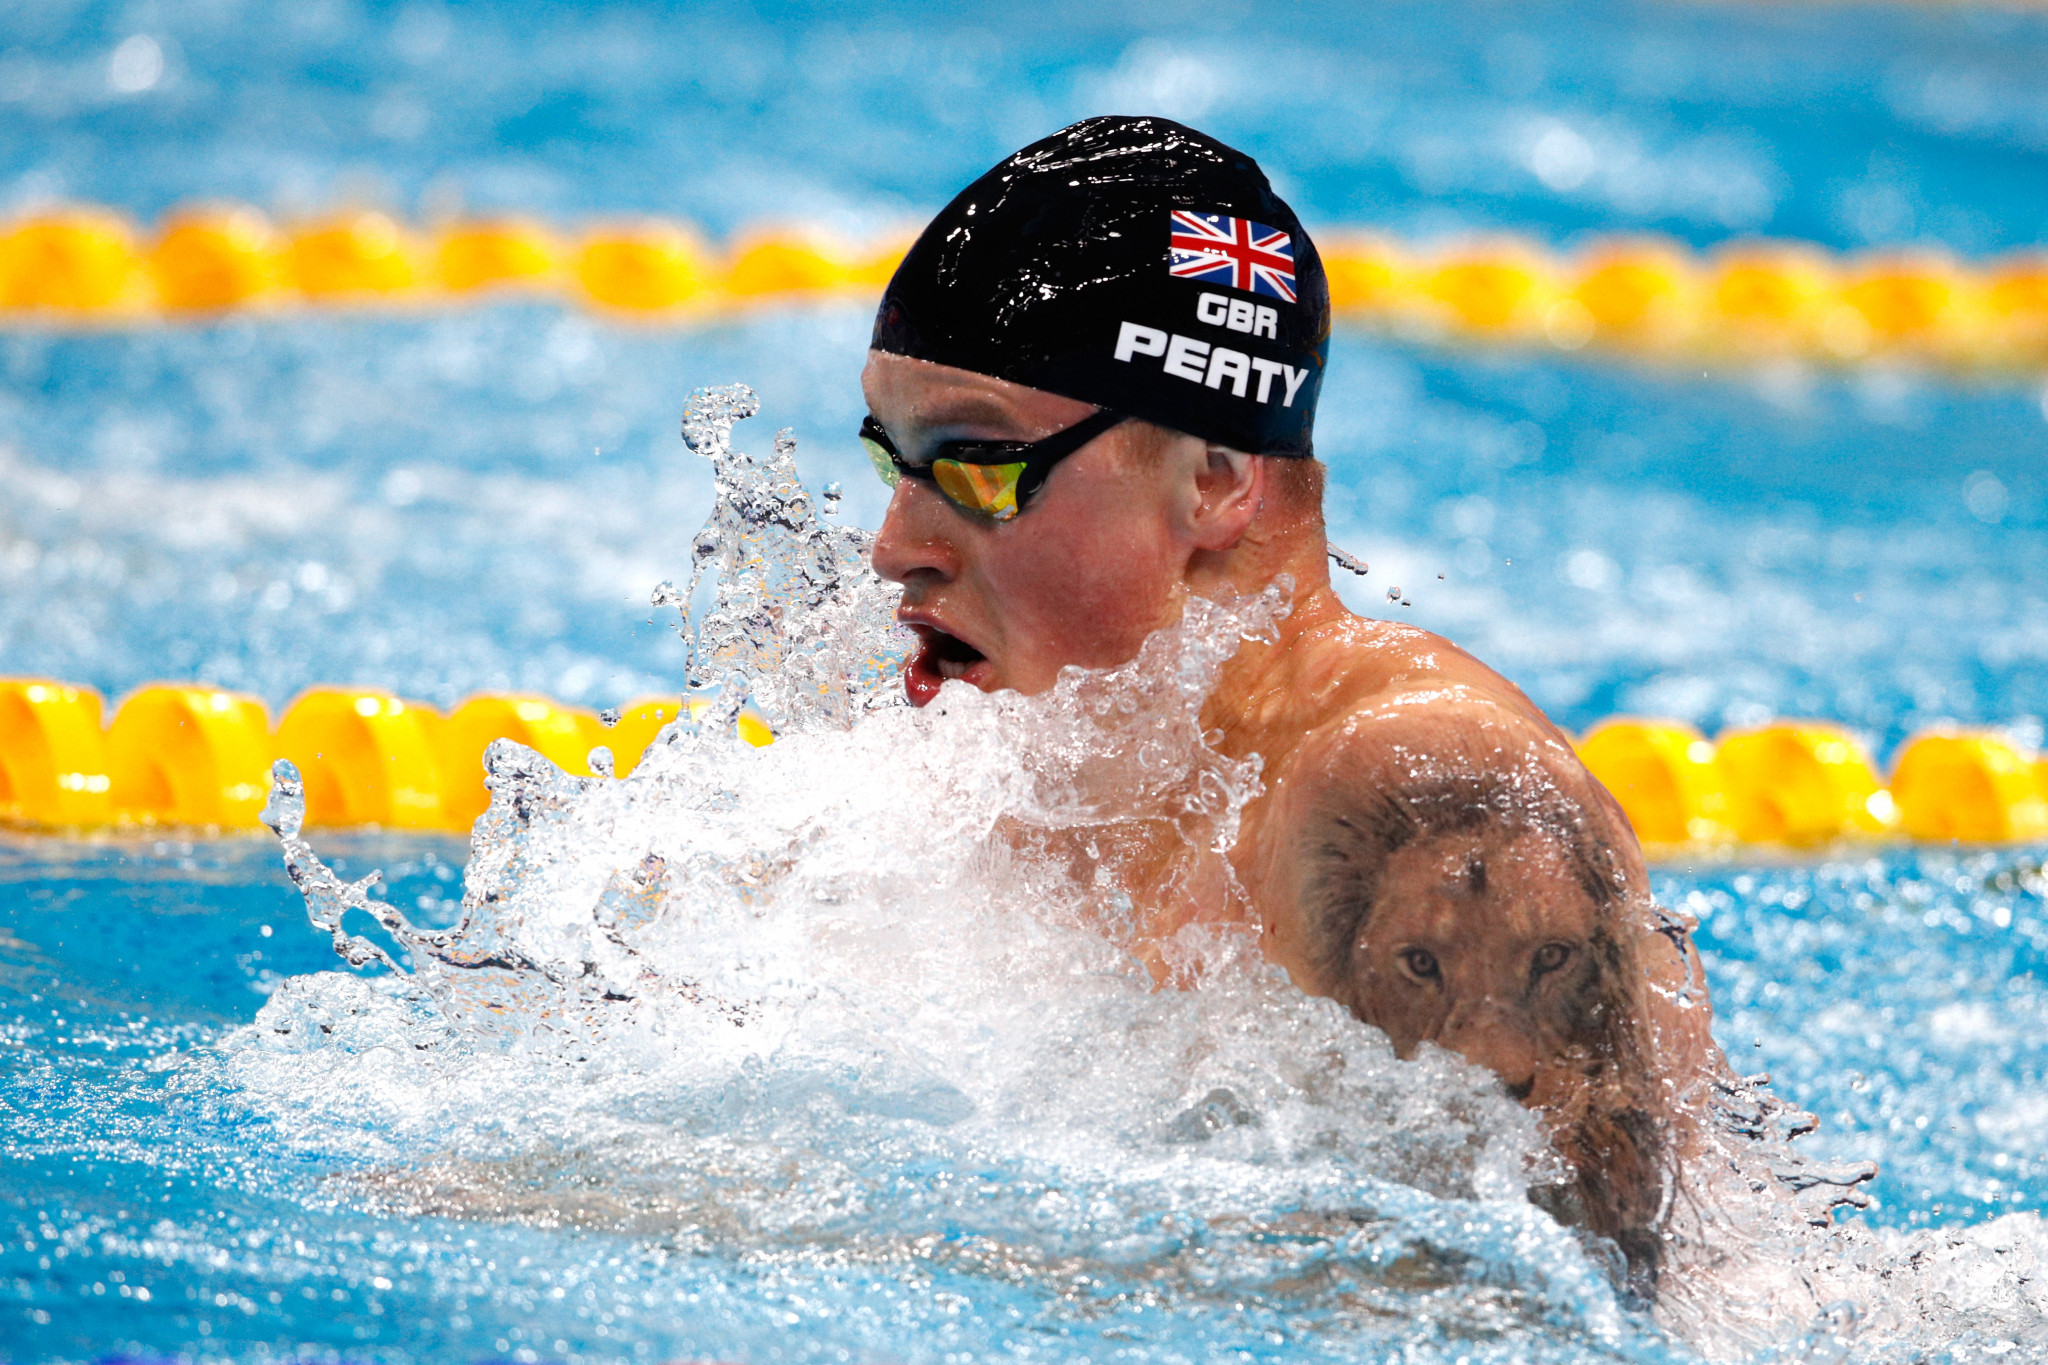 Big-name swimmers arrive in Copenhagen for the European Short Course Championships